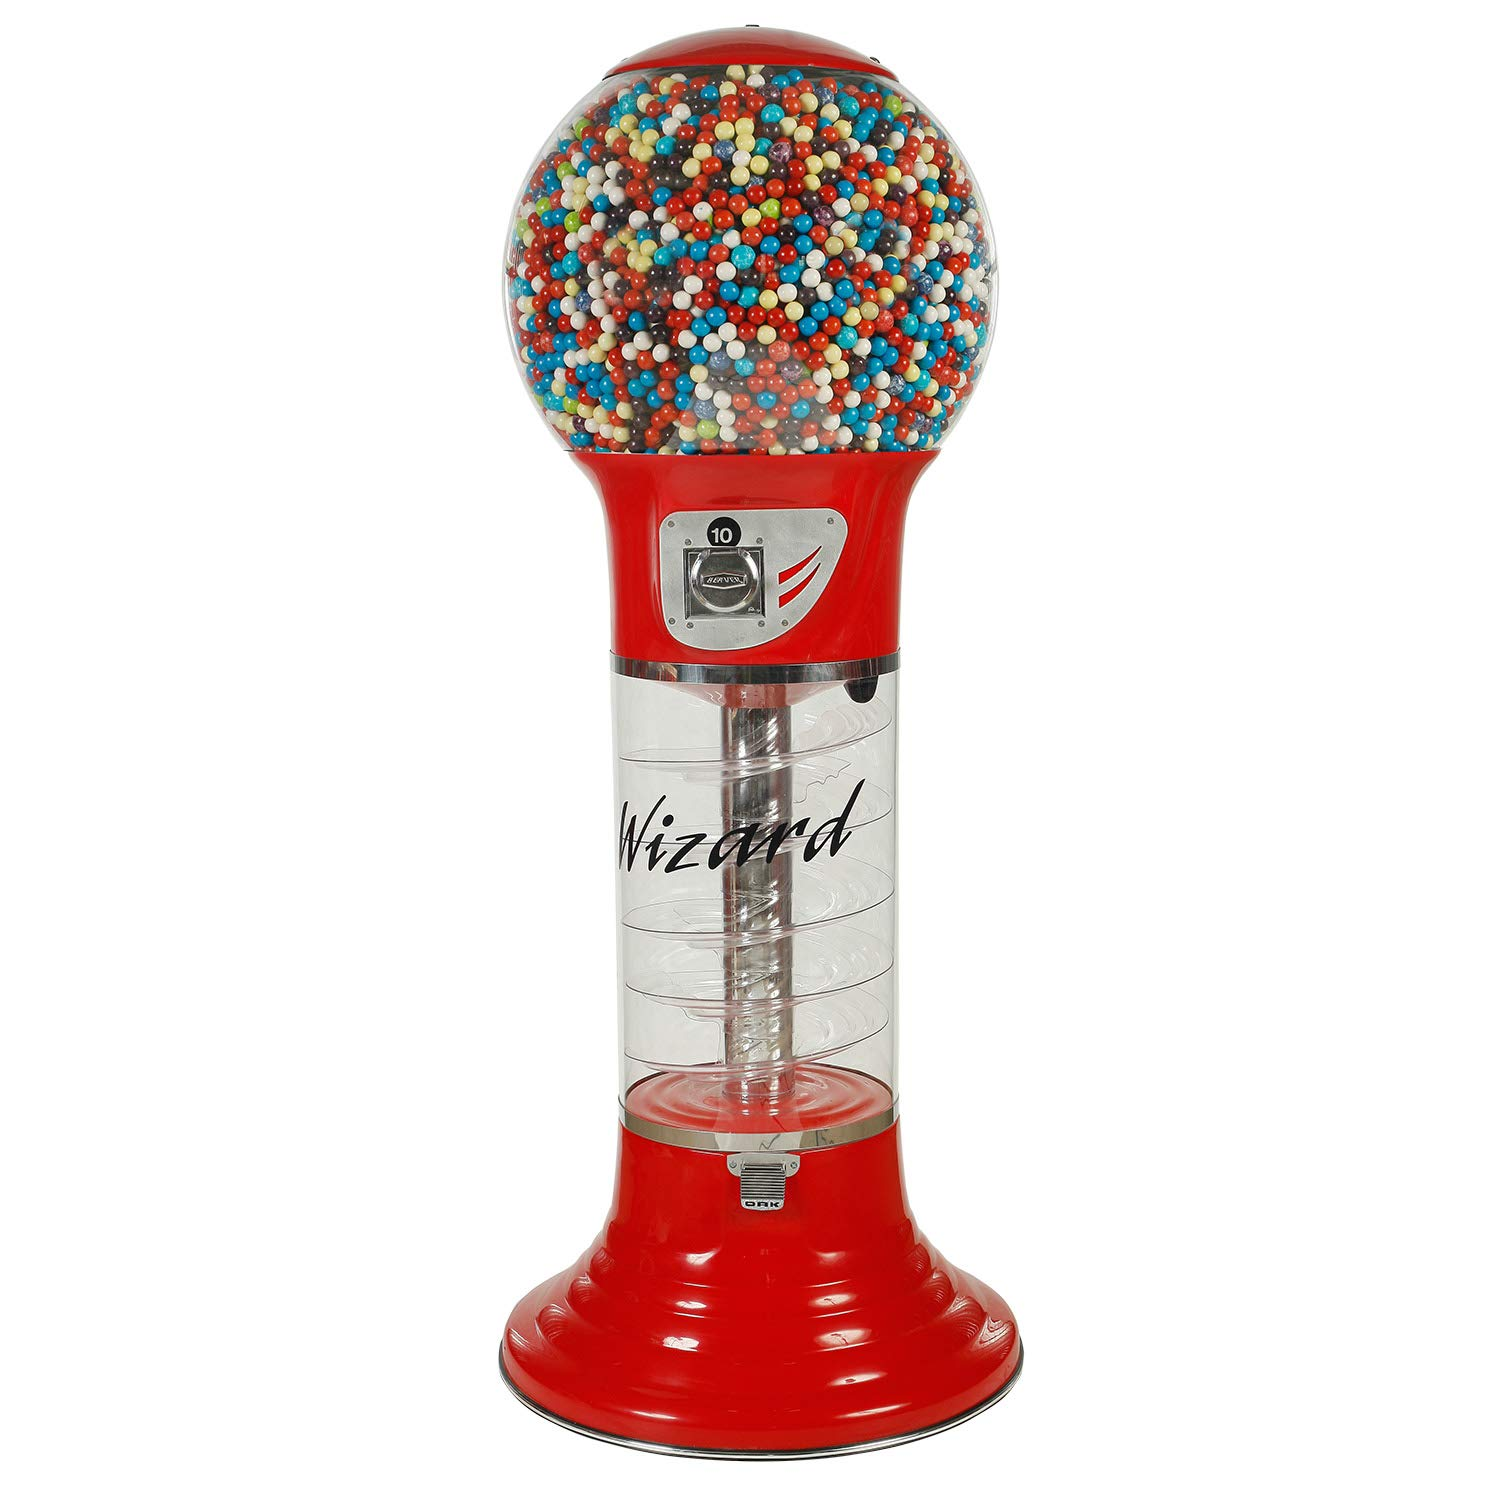 Spiral Gumball Vending Machines - Giant Wizard 5'6'' - $0.25 (Red)